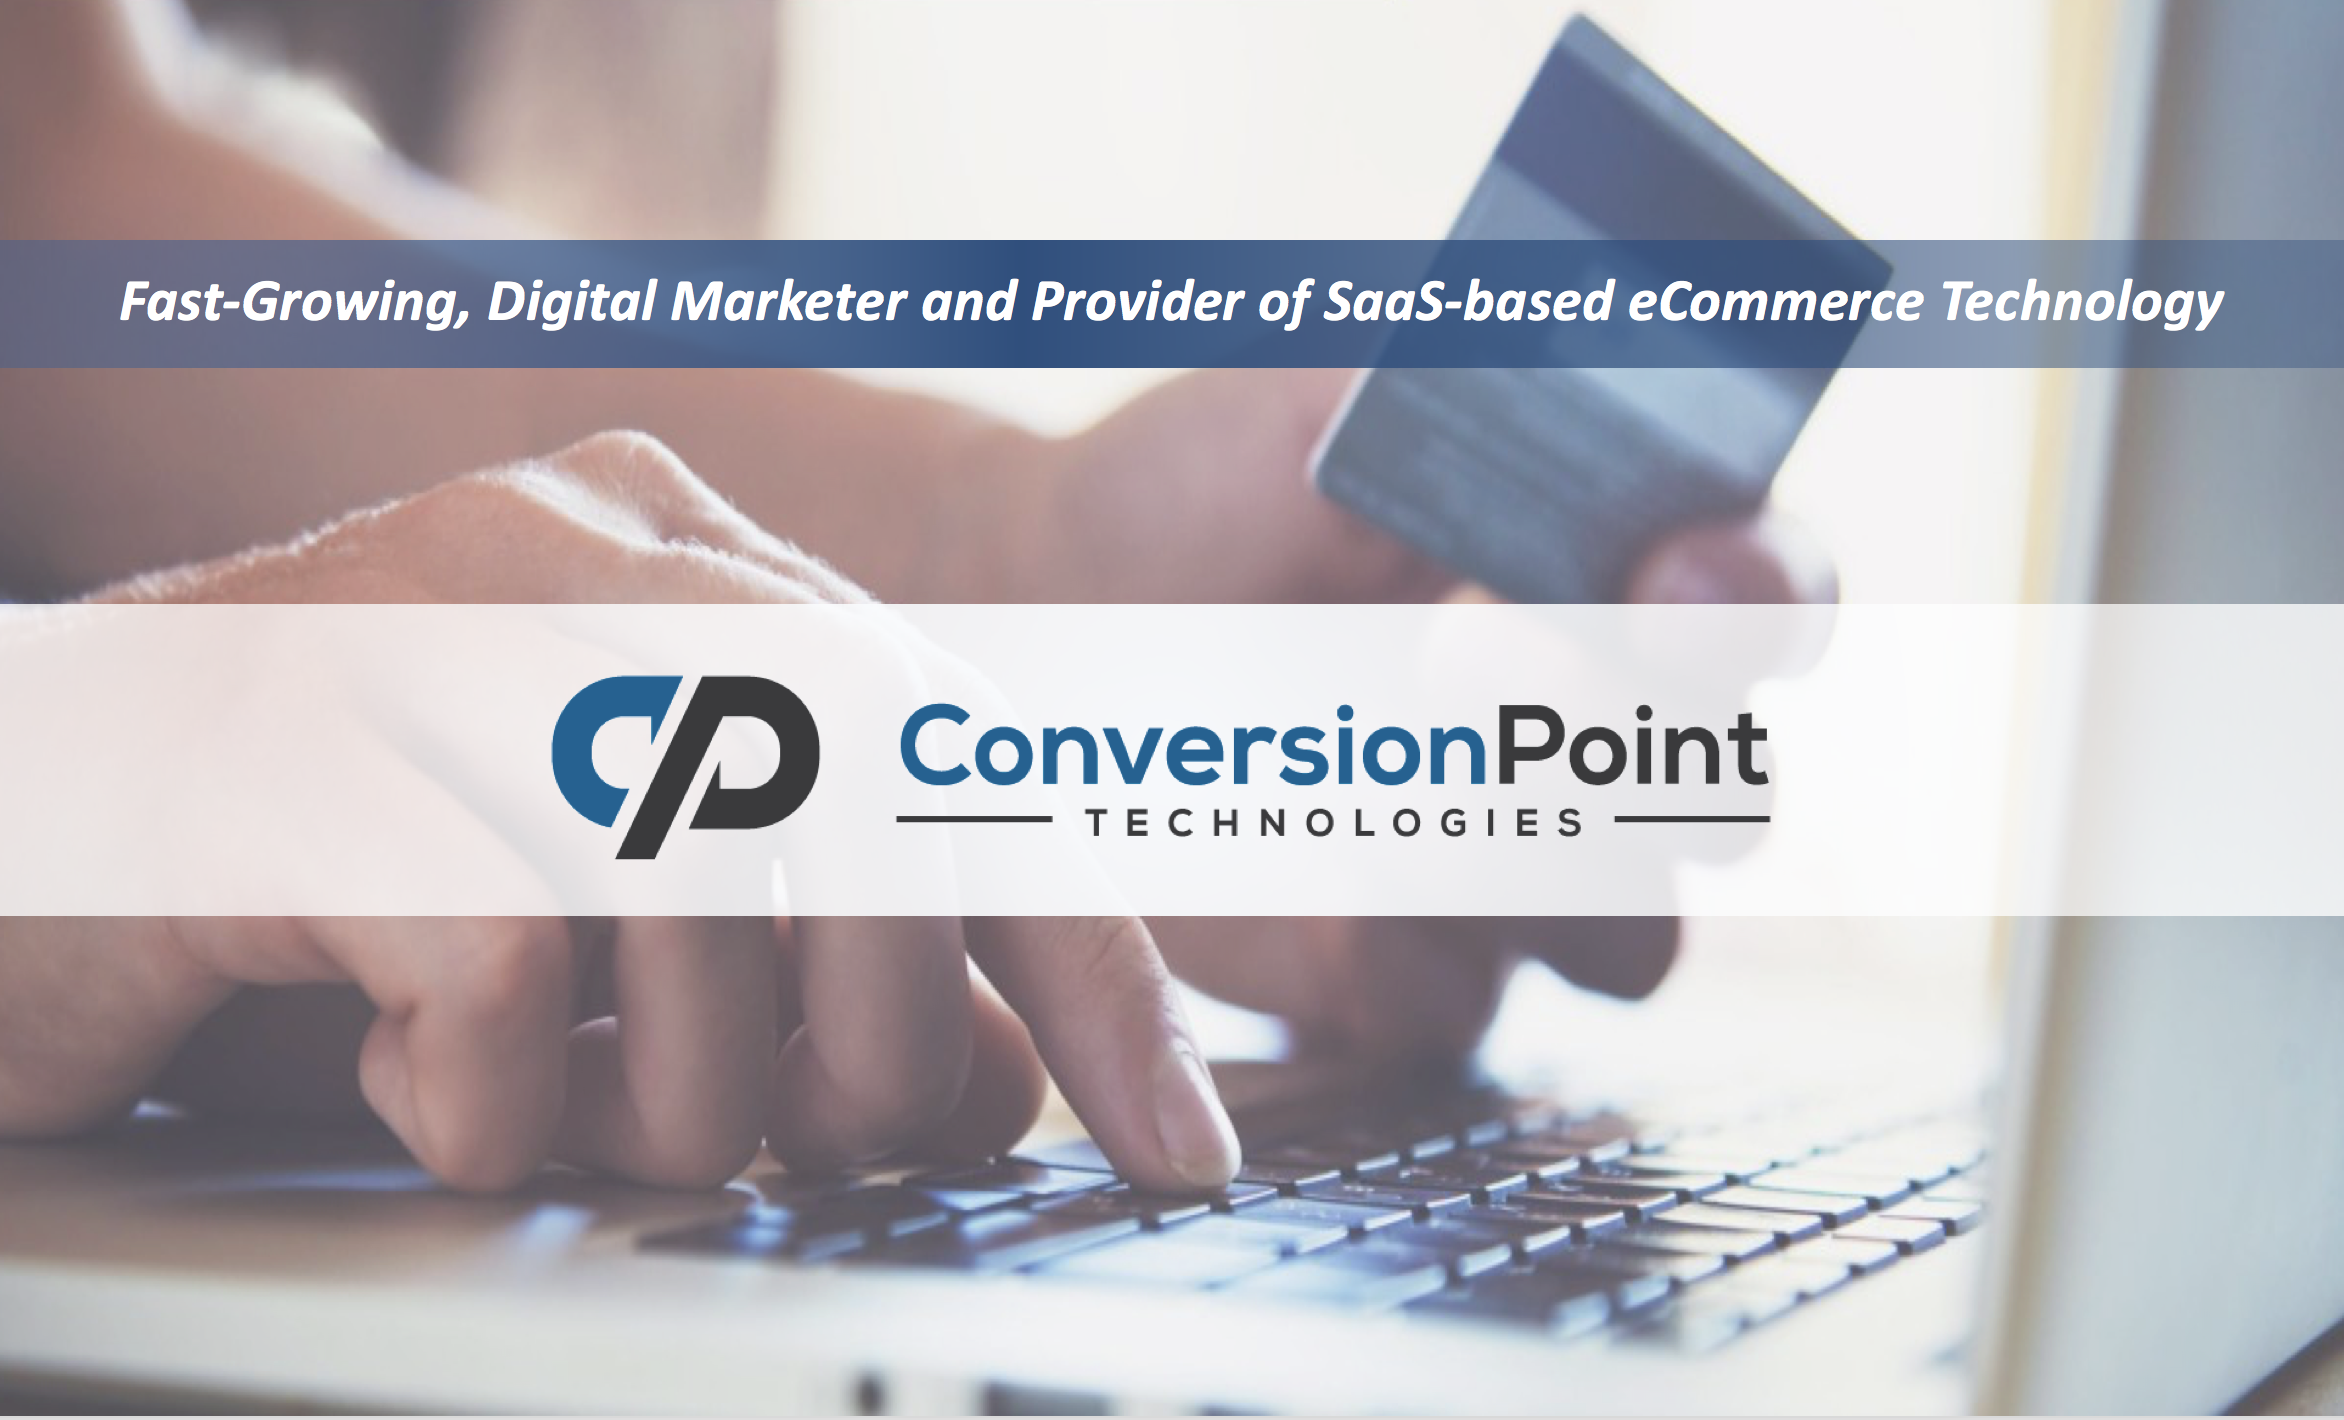 ConversionPoint Technologies (Pre-IPO)